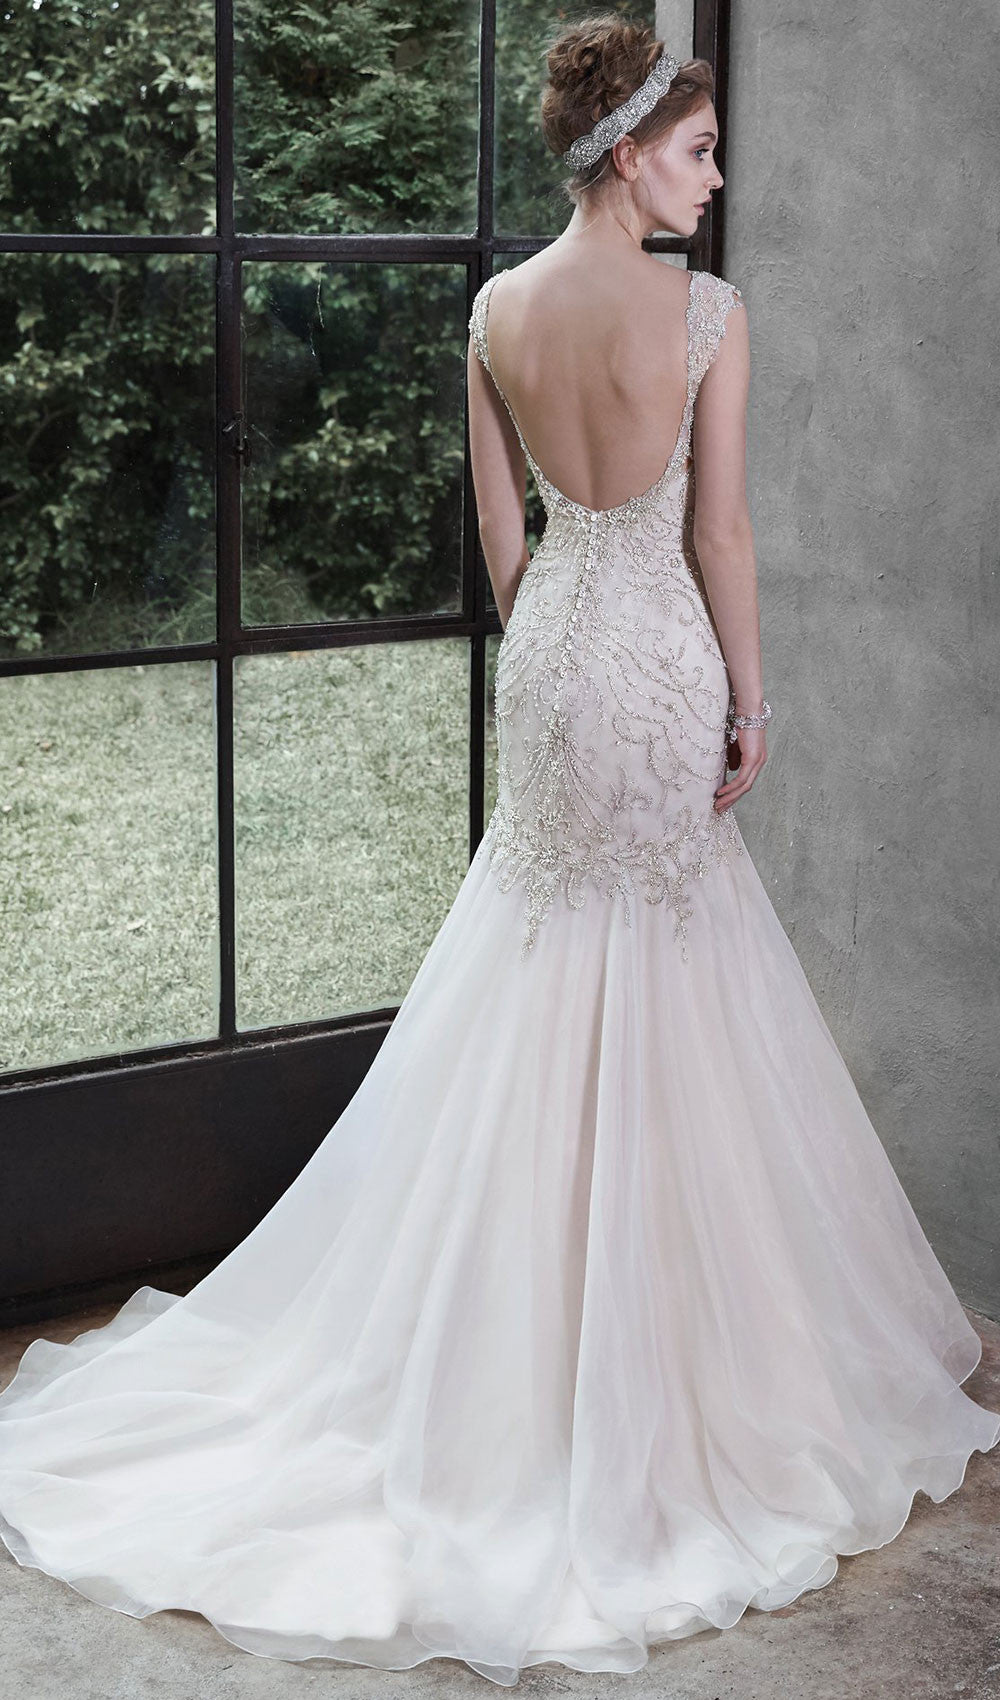 Maggie Sottero - STYLE MELISSA |Schaffer's Bridal in Des Moines, Iowa  and in Scottsdale, Arizona